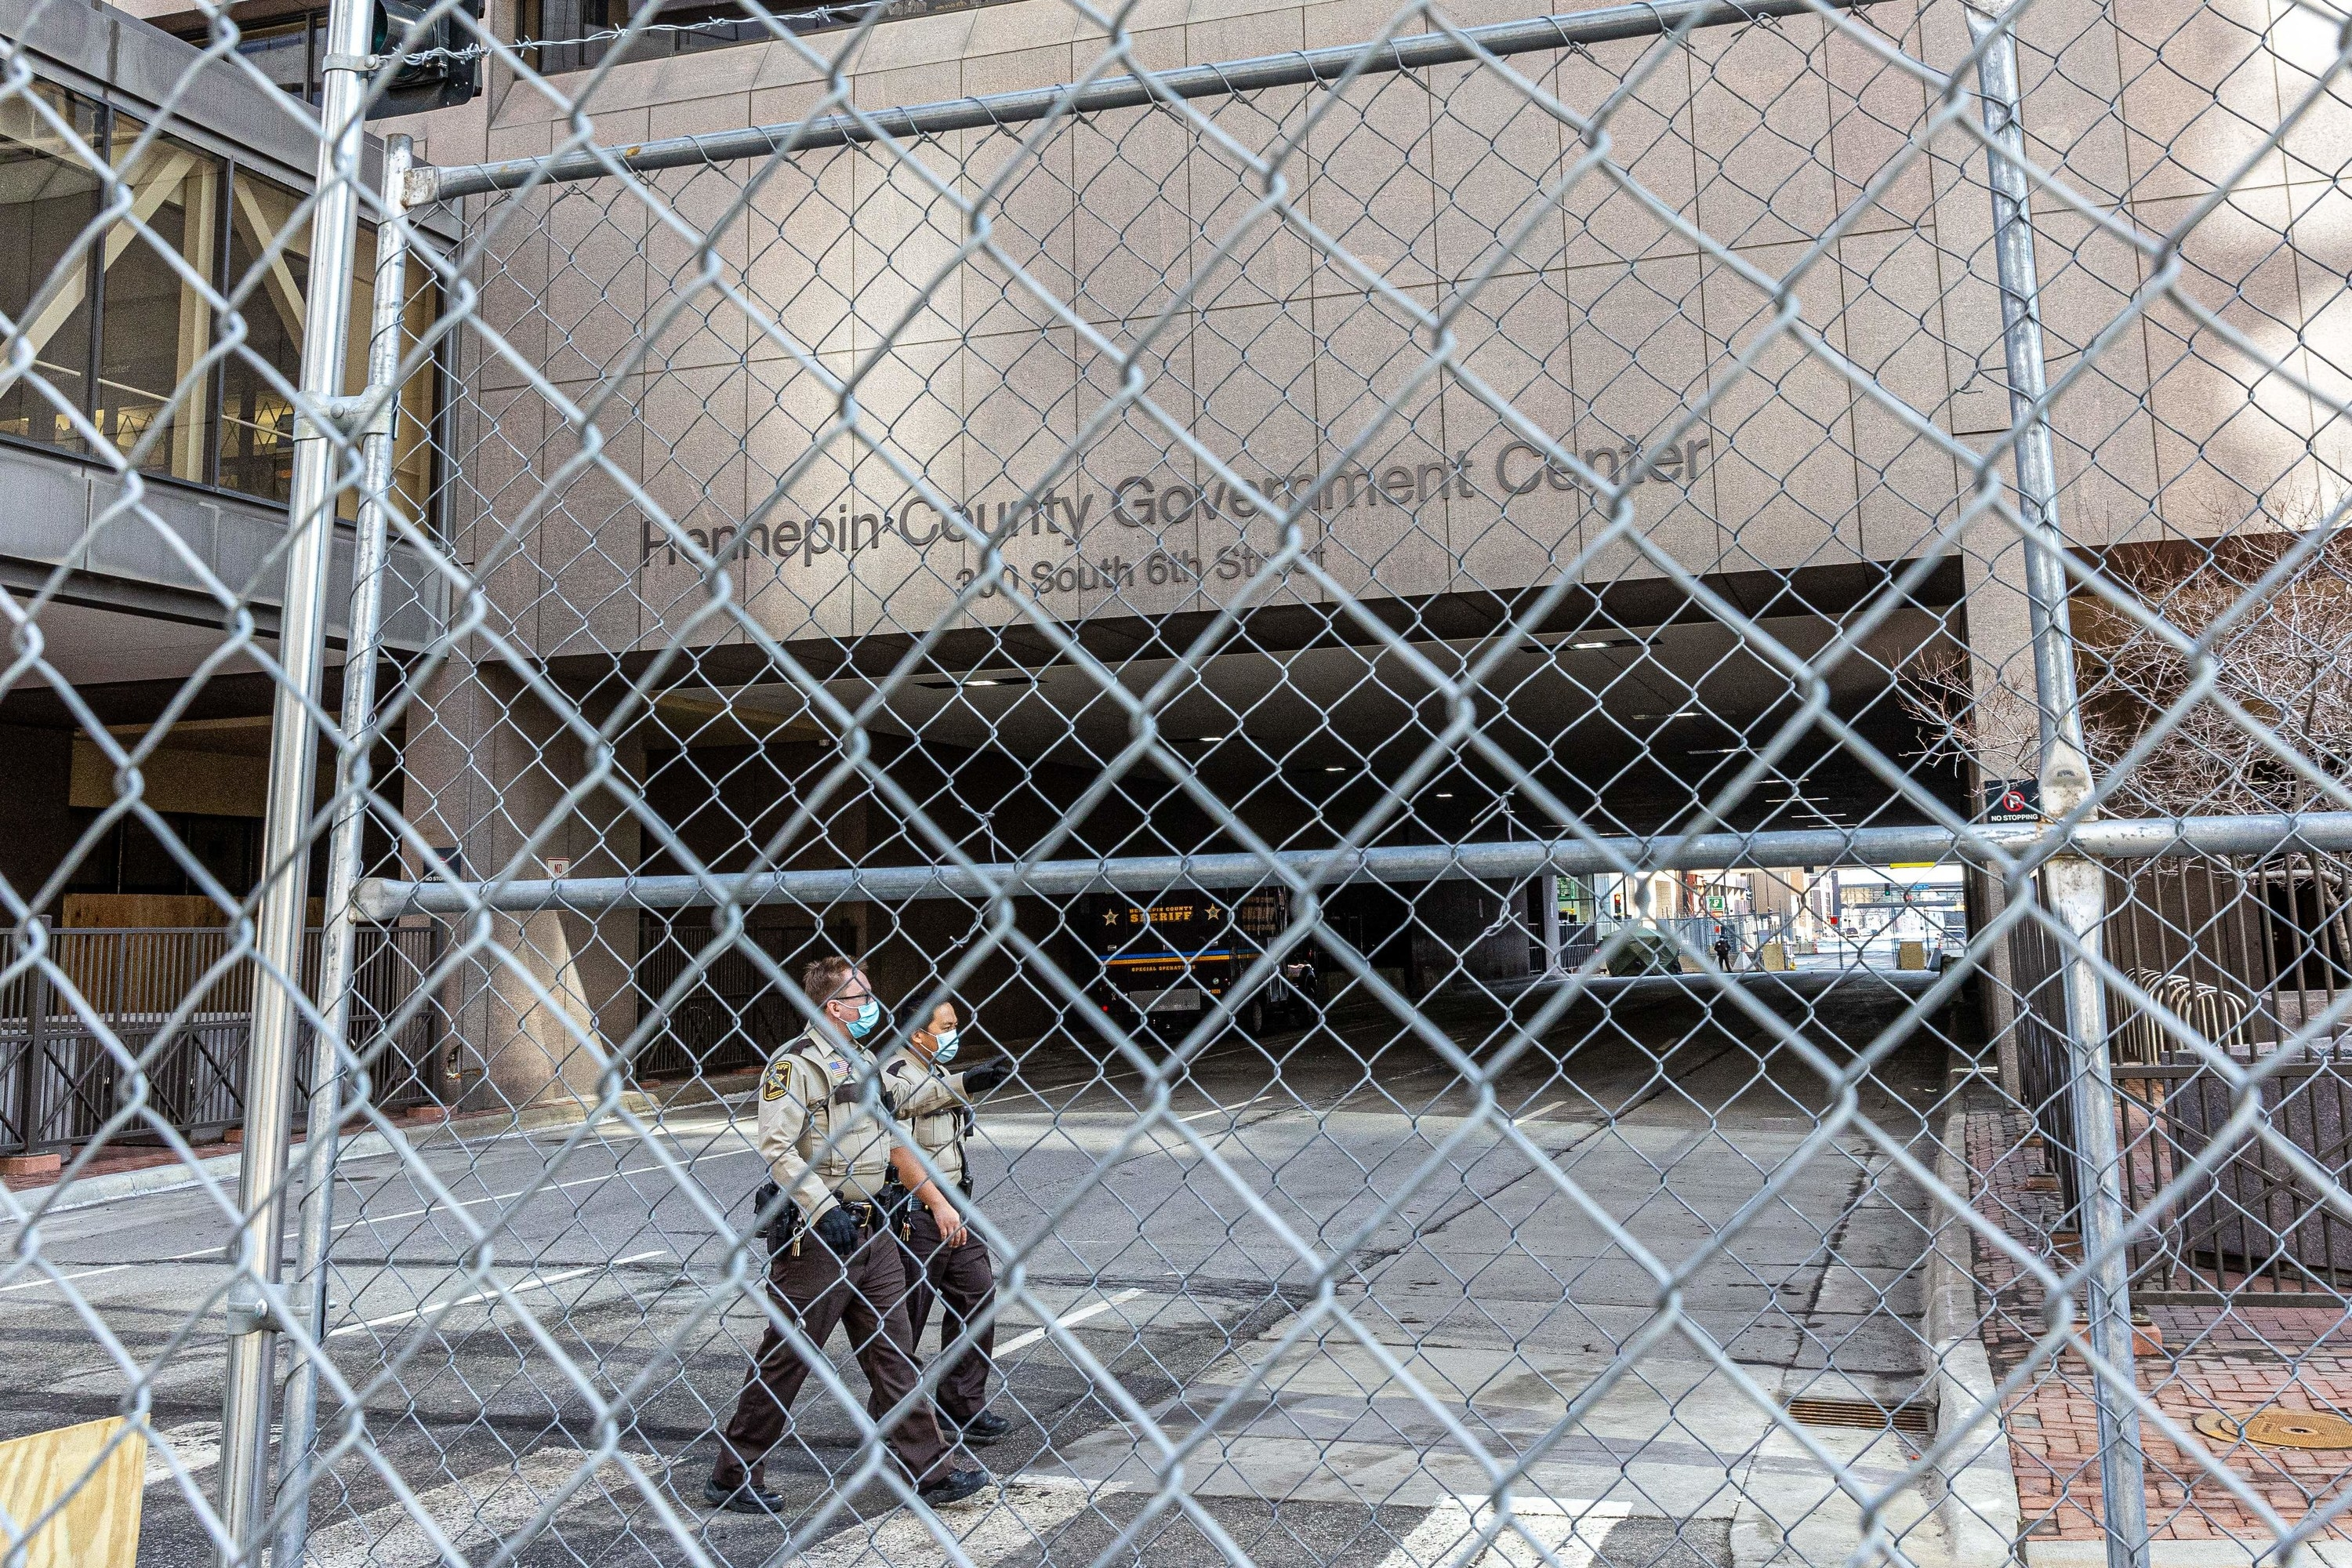 Masked police officers walk between fencing and the Hennepin County Government Center